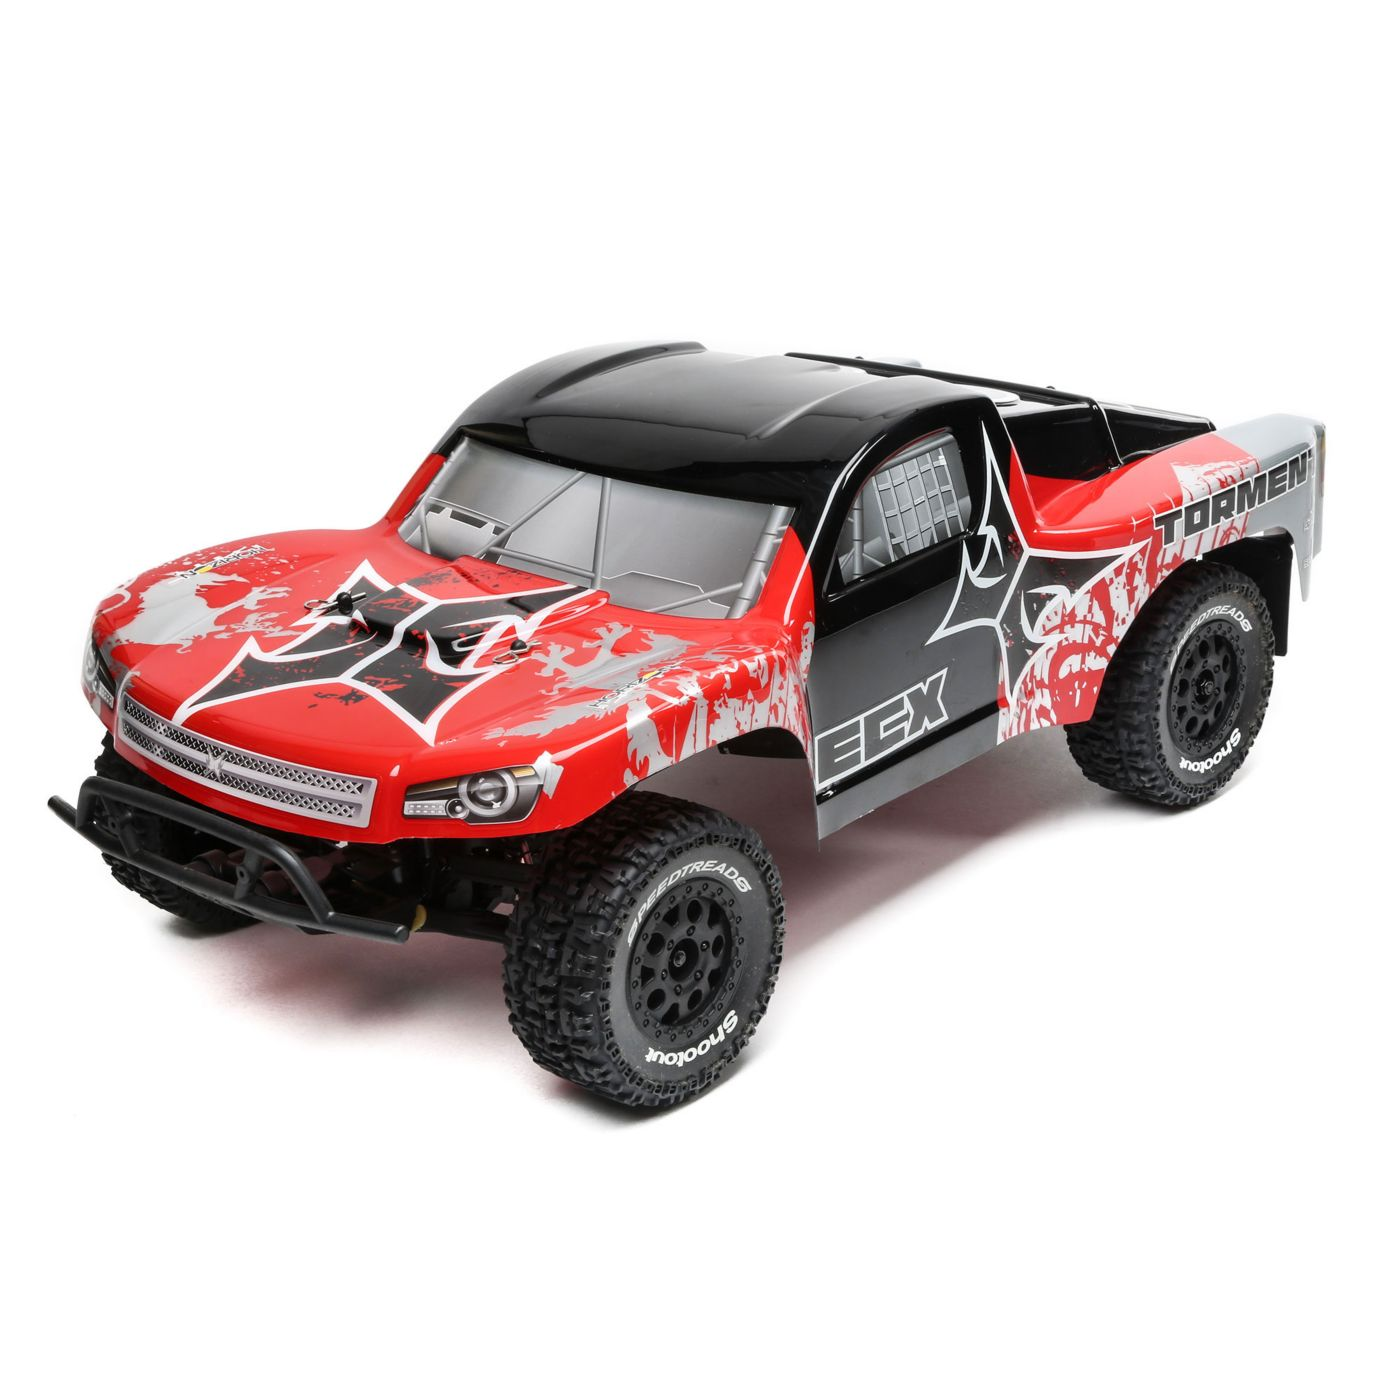 1/10 Torment 2WD SCT, Brushed, LiPo, RTR: Red/Silver